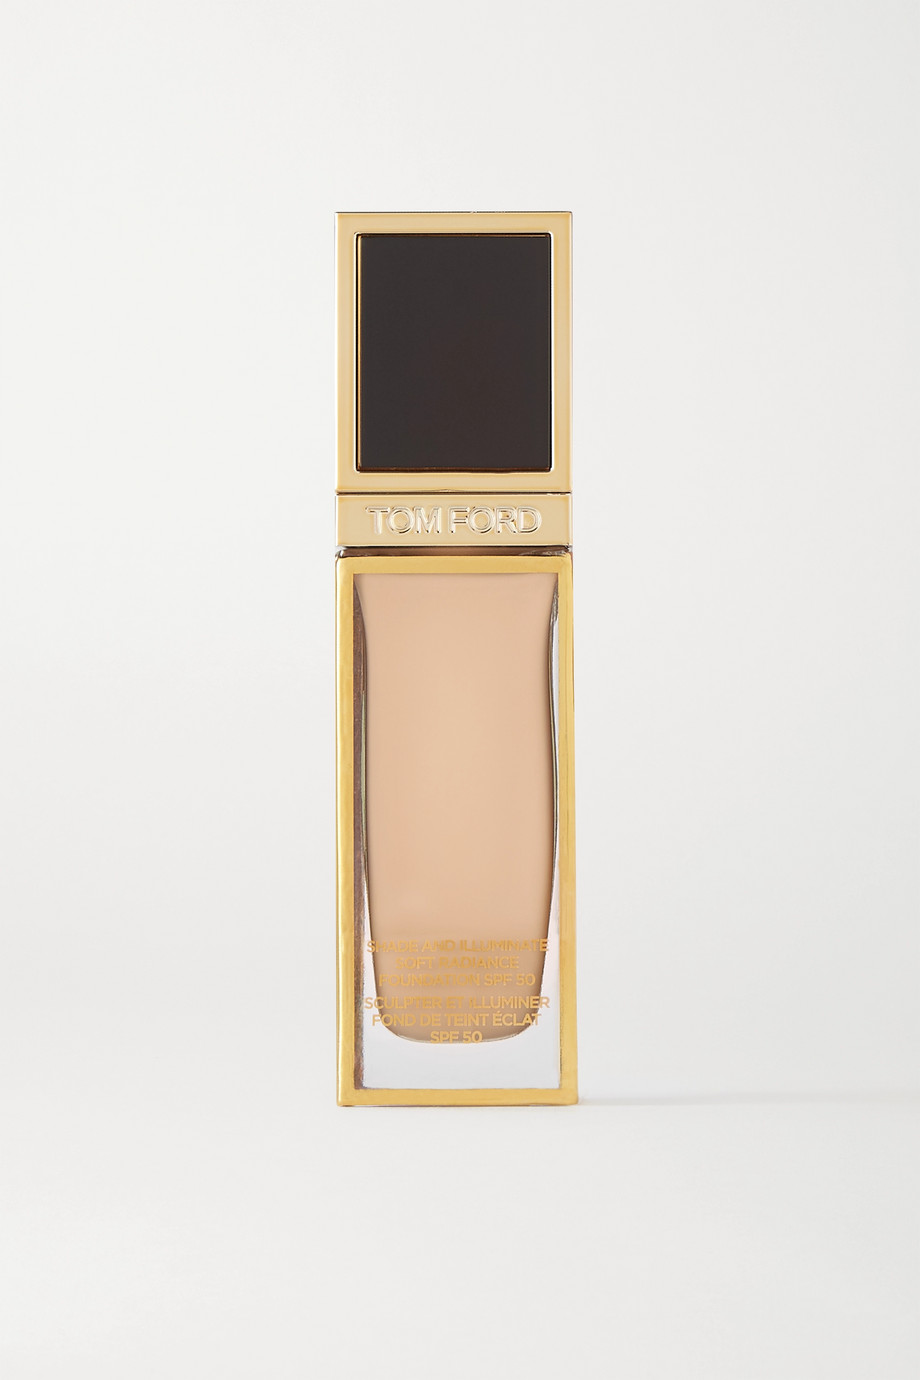 TOM FORD BEAUTY Shade and Illuminate Soft Radiance Foundation SPF50 - 1.5 Cream, 30ml